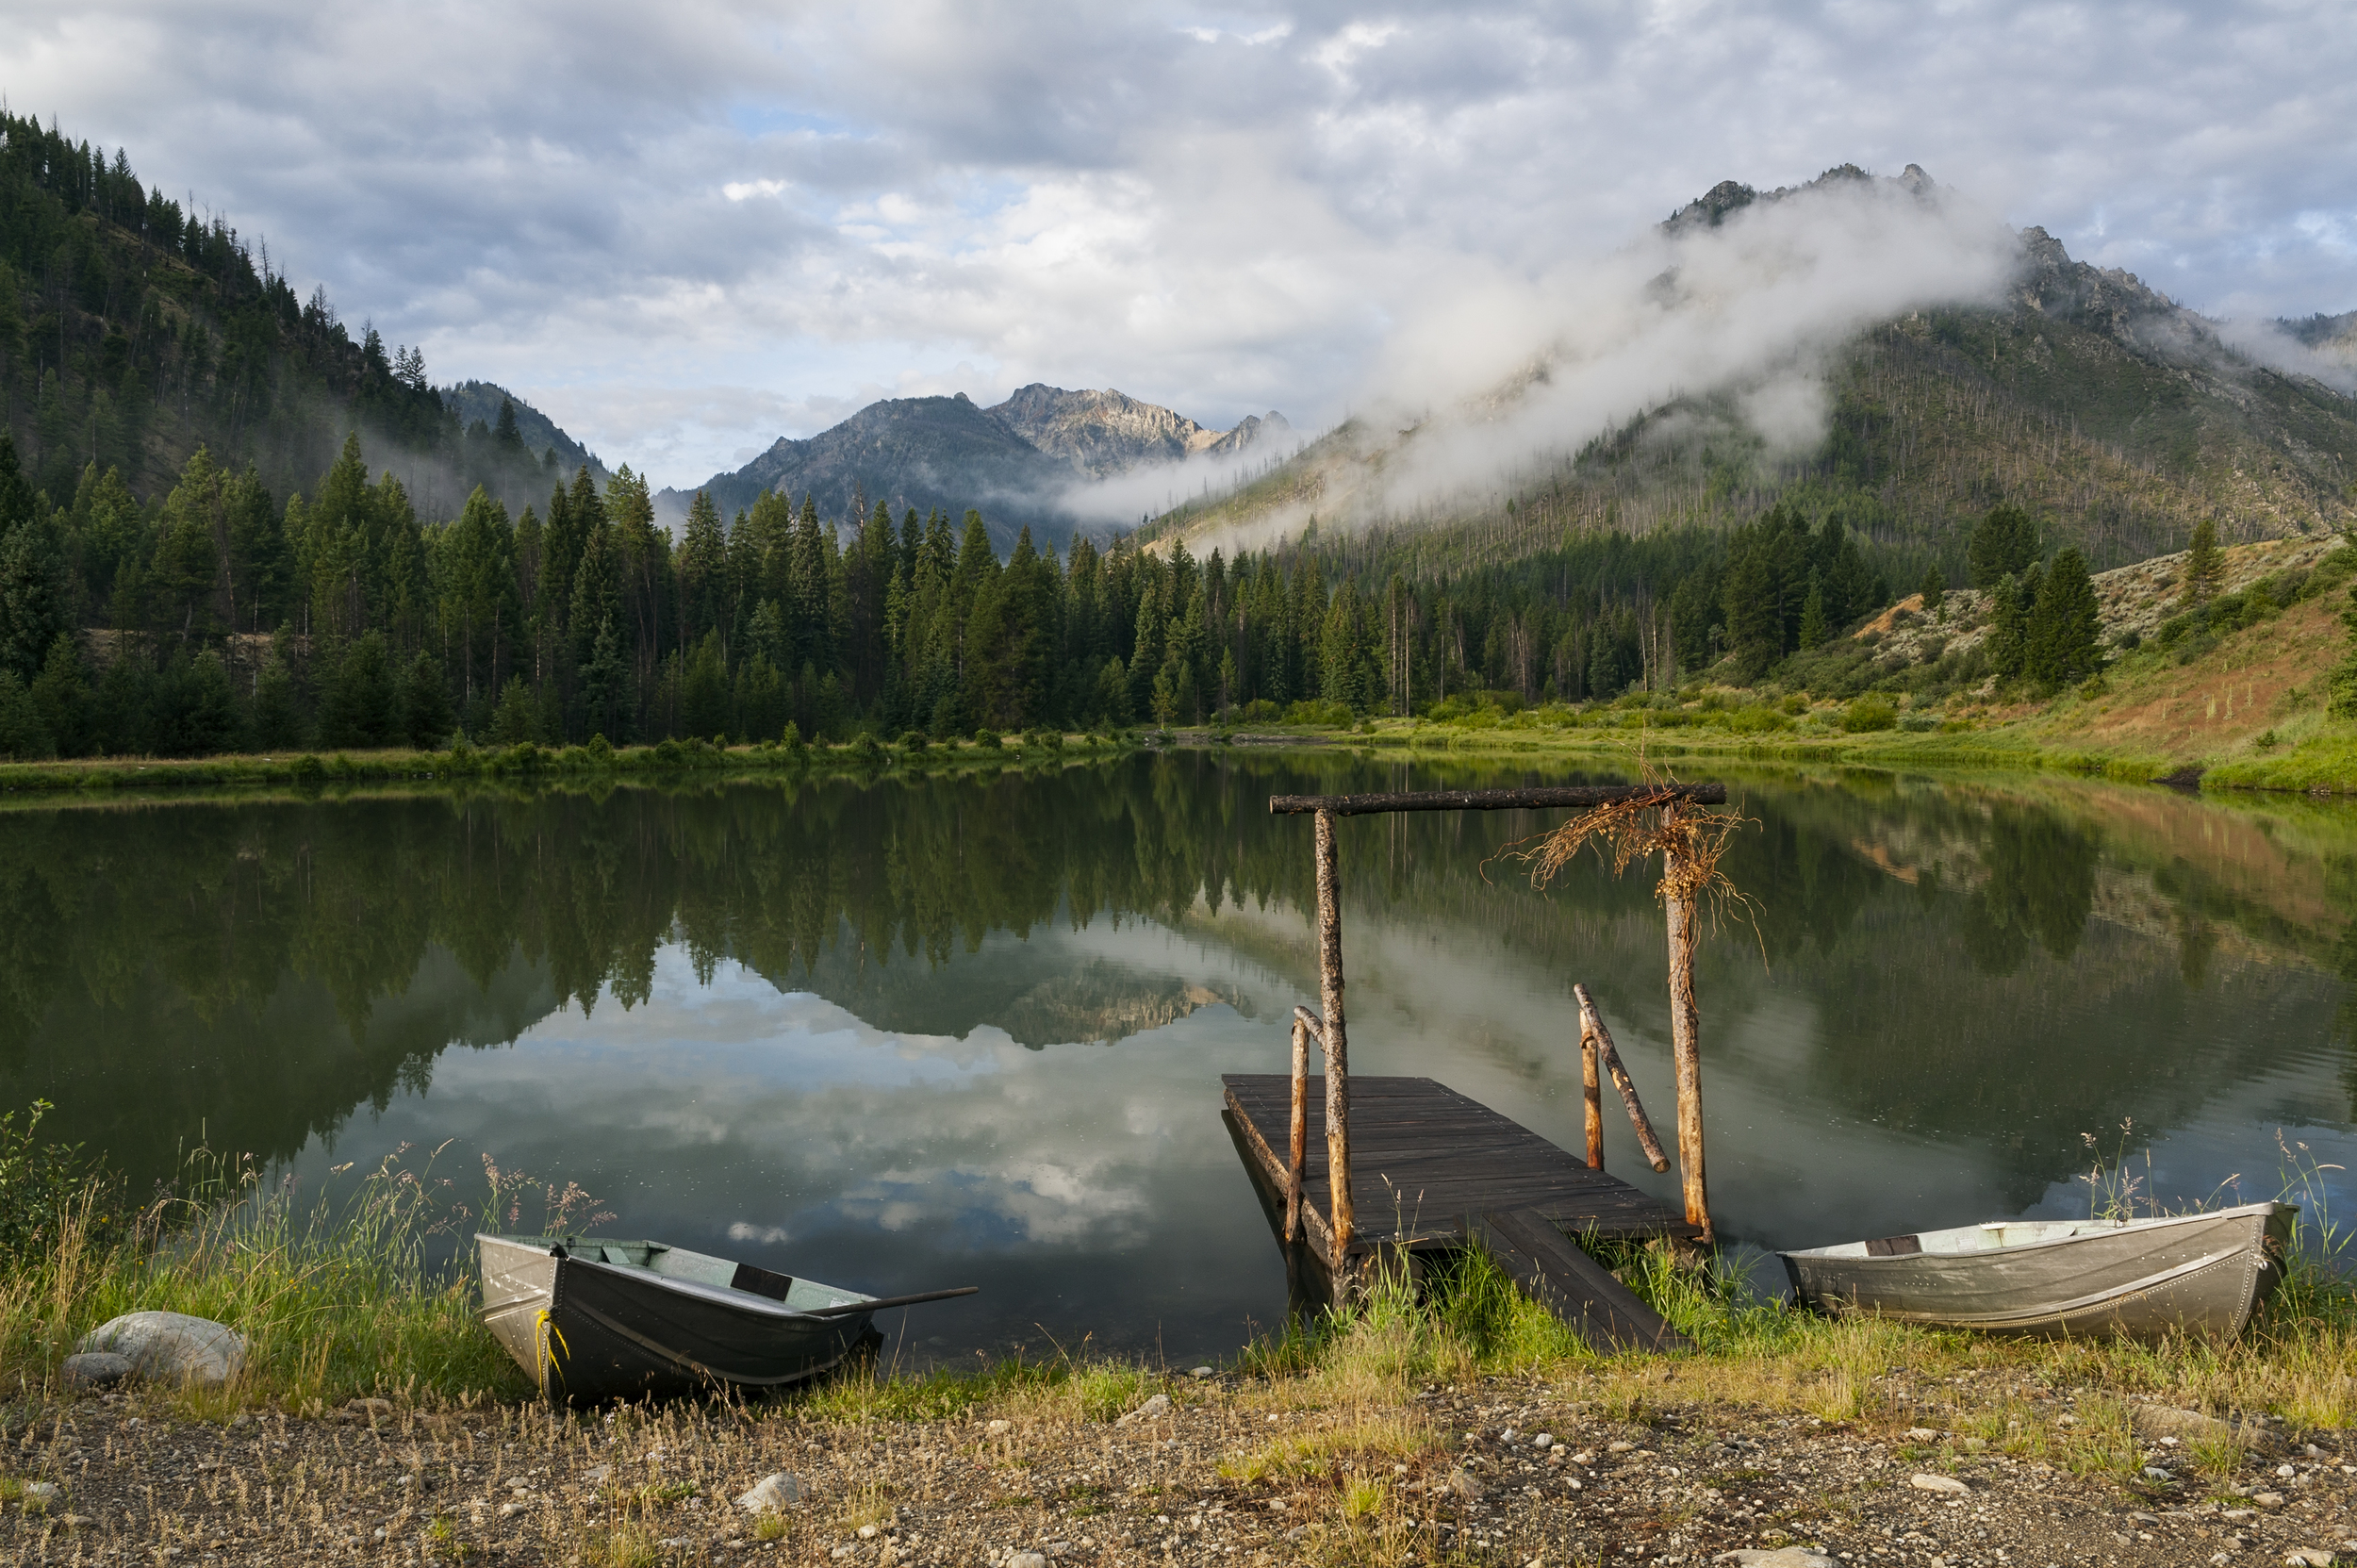 W23094h-id-Mountain lake with boat dock.jpg